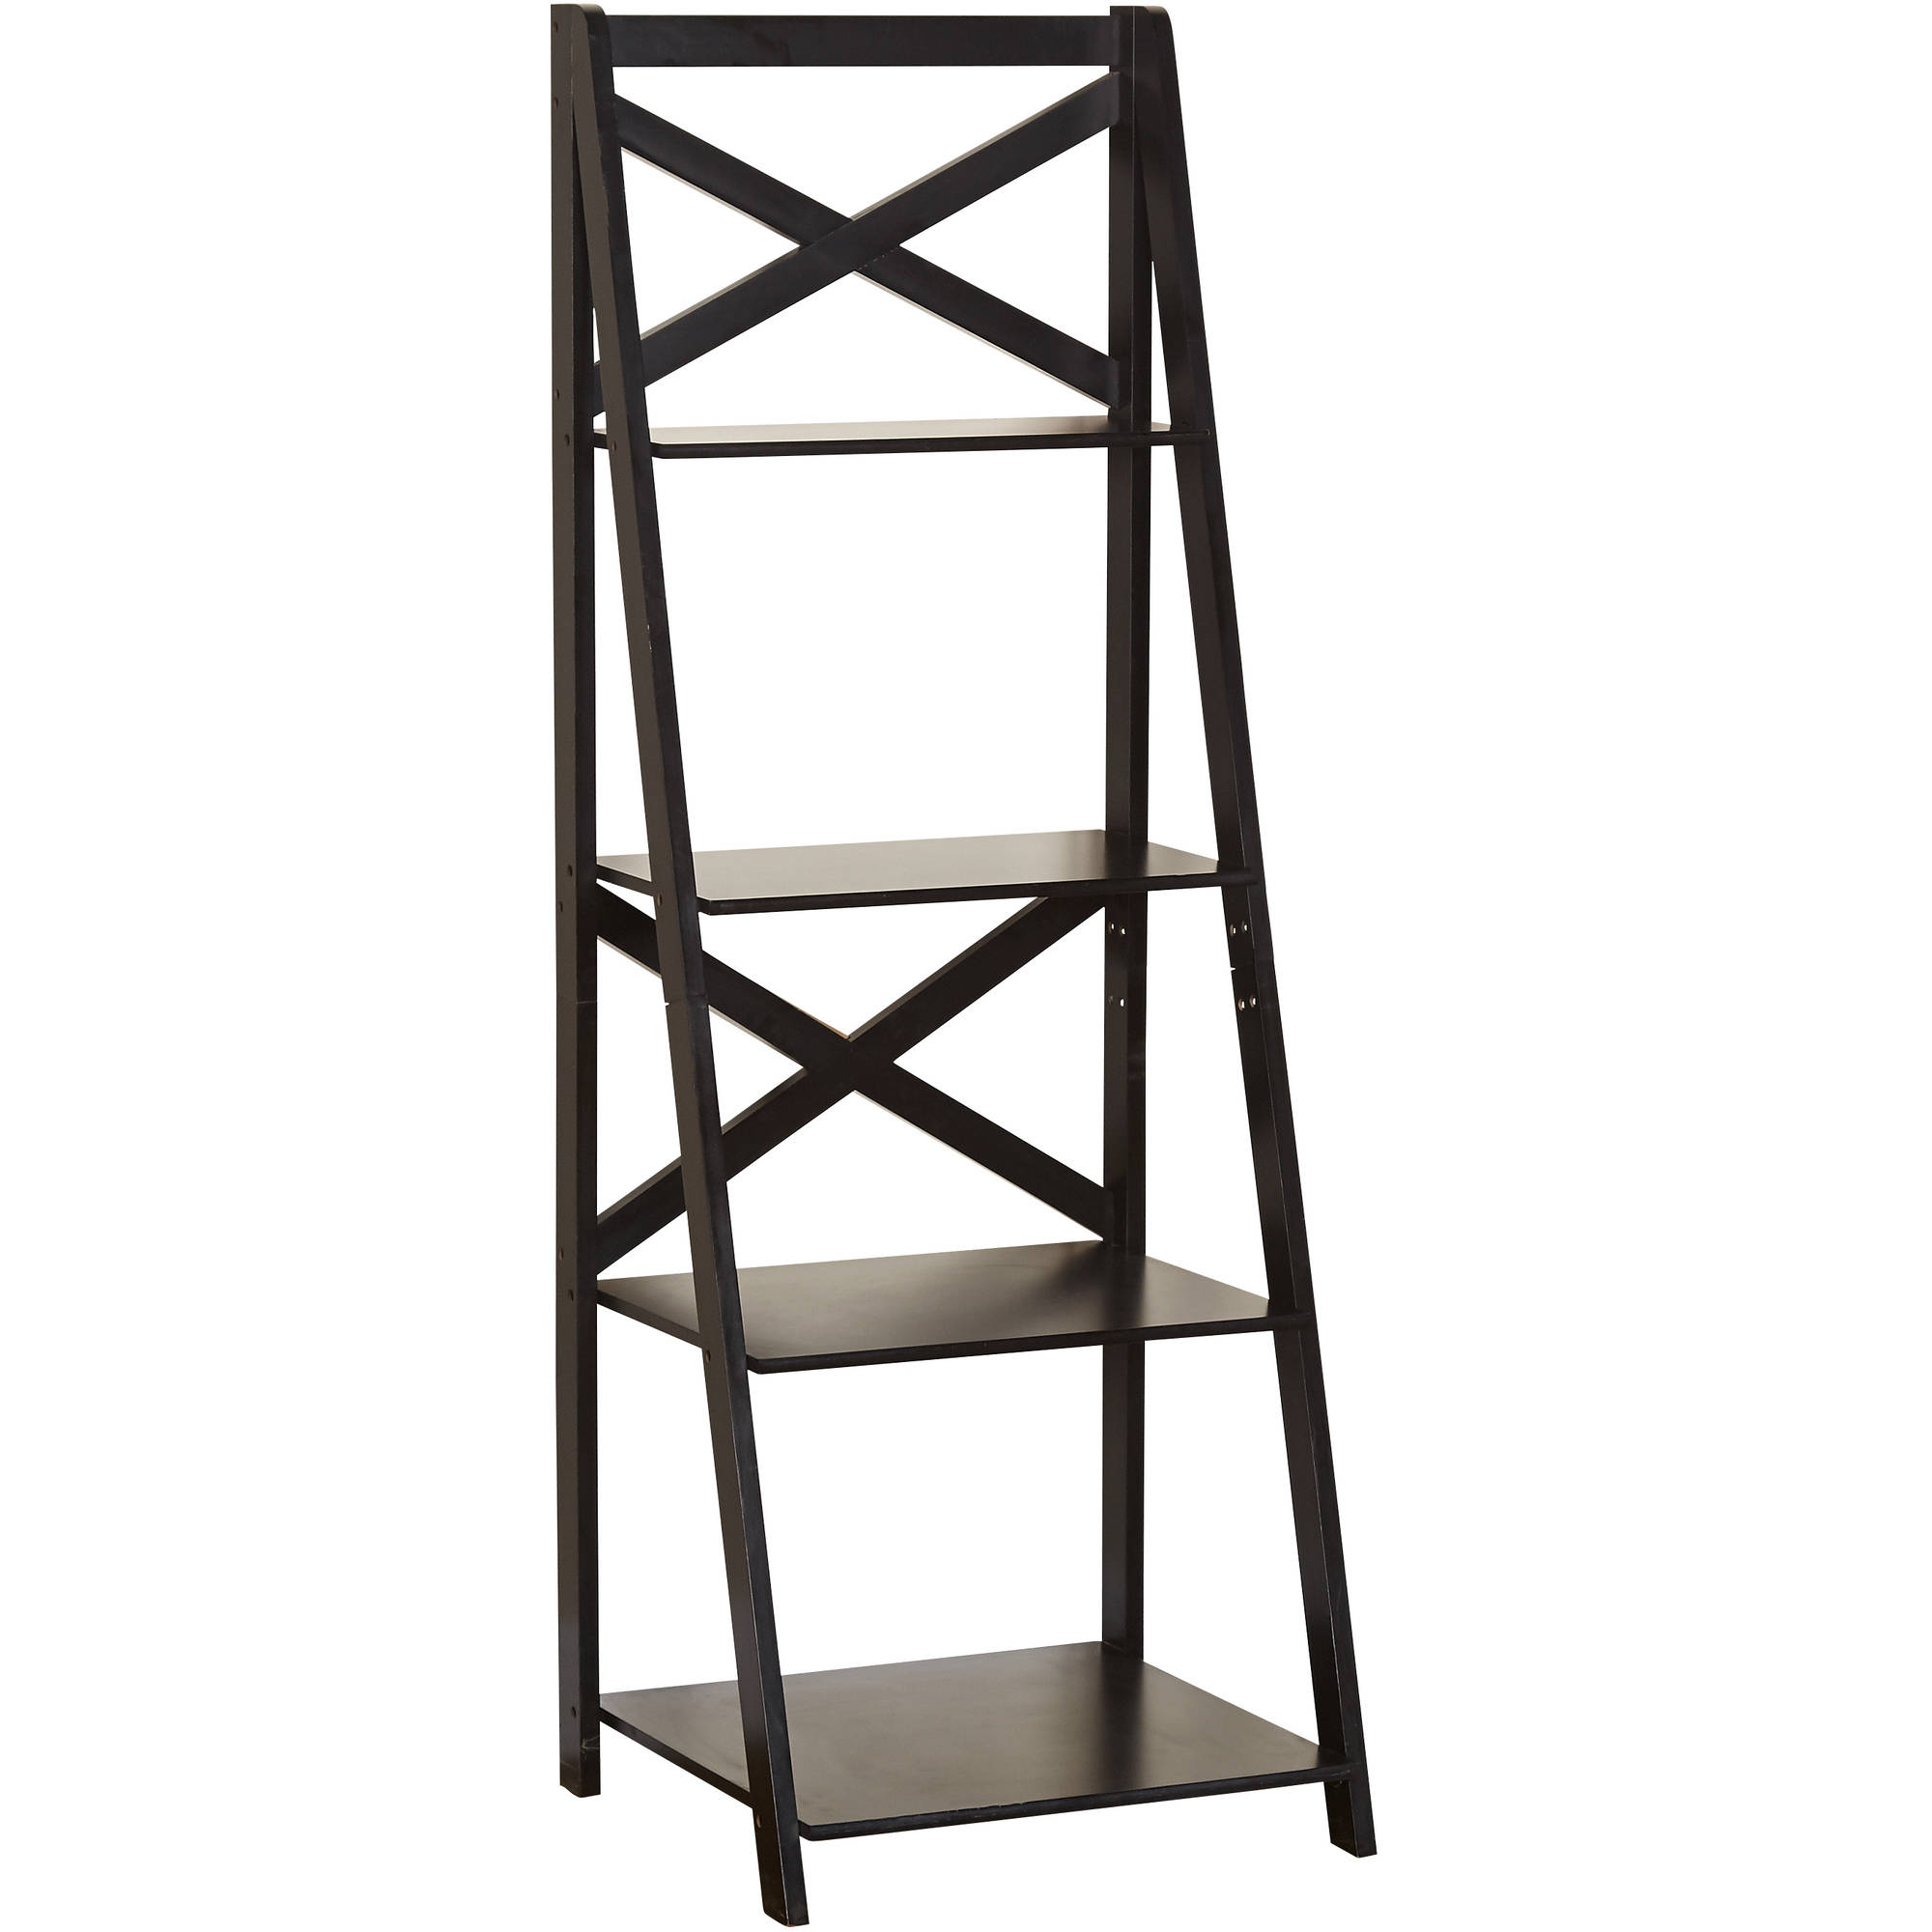 bookcase today free metal knight bookshelf home shipping overstock garden christopher and product wood